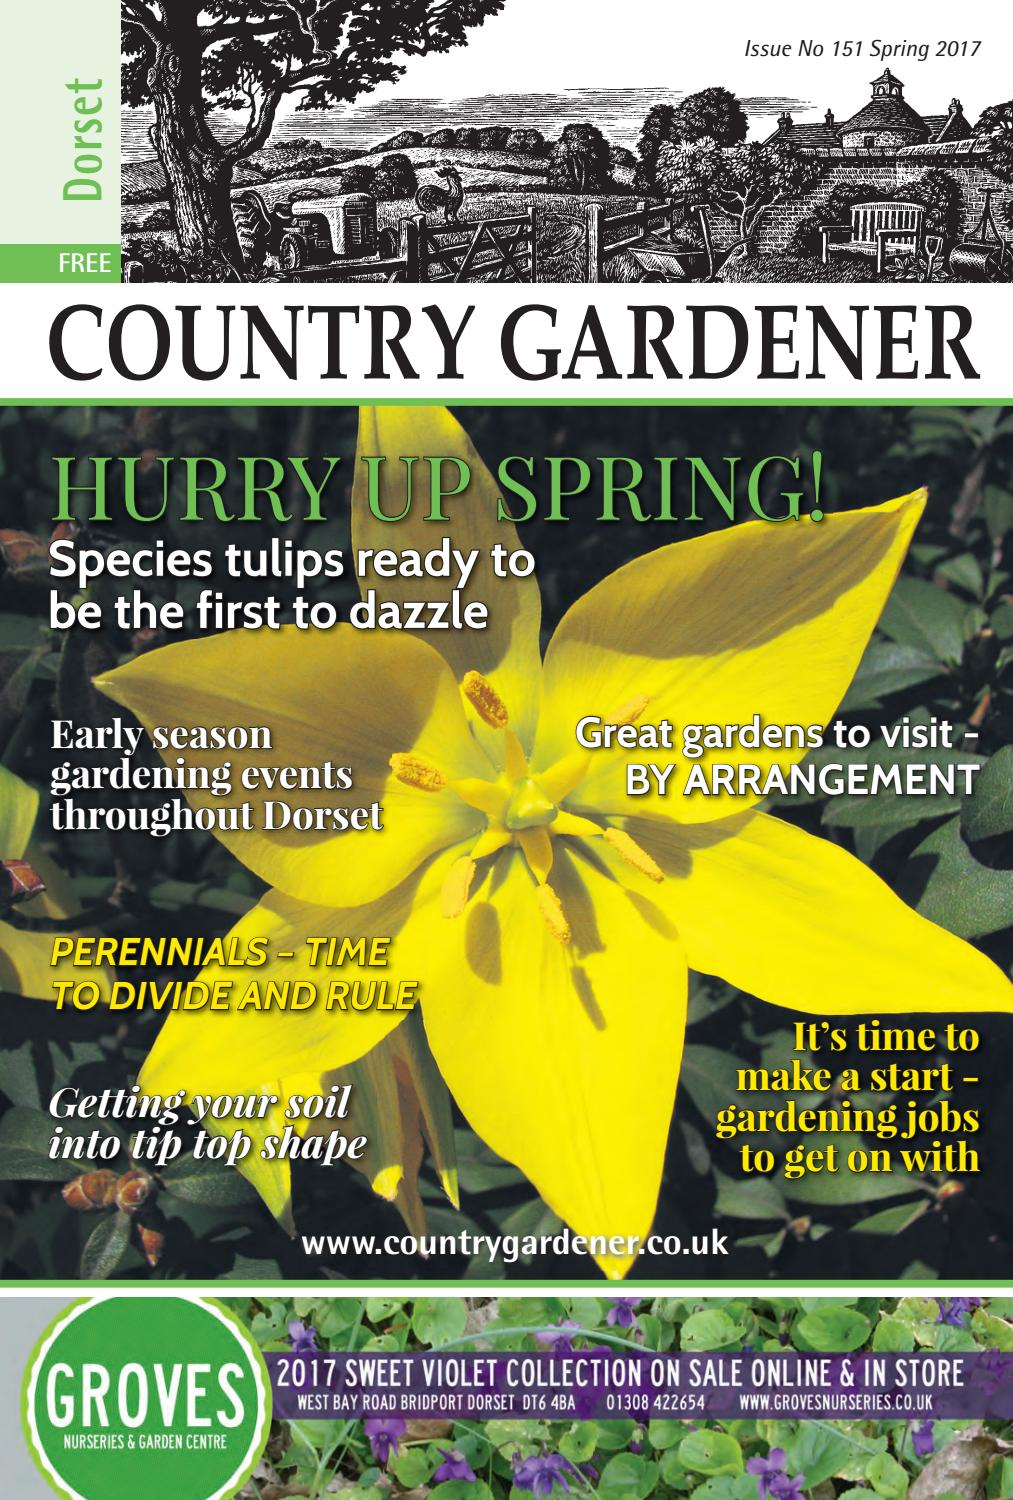 Gorgeous Dorset Country Gardener Spring  By Country Gardener  Issuu With Hot Gabion Garden Besides Garden Gate For Sale Furthermore Ruby Garden Chinese With Appealing German Garden Furniture Also Aluminium Garden Furniture Sale In Addition Cheap Wooden Garden Bench And Garden Route Safari Parks As Well As Flowers With Garden Additionally Pebbles For The Garden From Issuucom With   Hot Dorset Country Gardener Spring  By Country Gardener  Issuu With Appealing Gabion Garden Besides Garden Gate For Sale Furthermore Ruby Garden Chinese And Gorgeous German Garden Furniture Also Aluminium Garden Furniture Sale In Addition Cheap Wooden Garden Bench From Issuucom